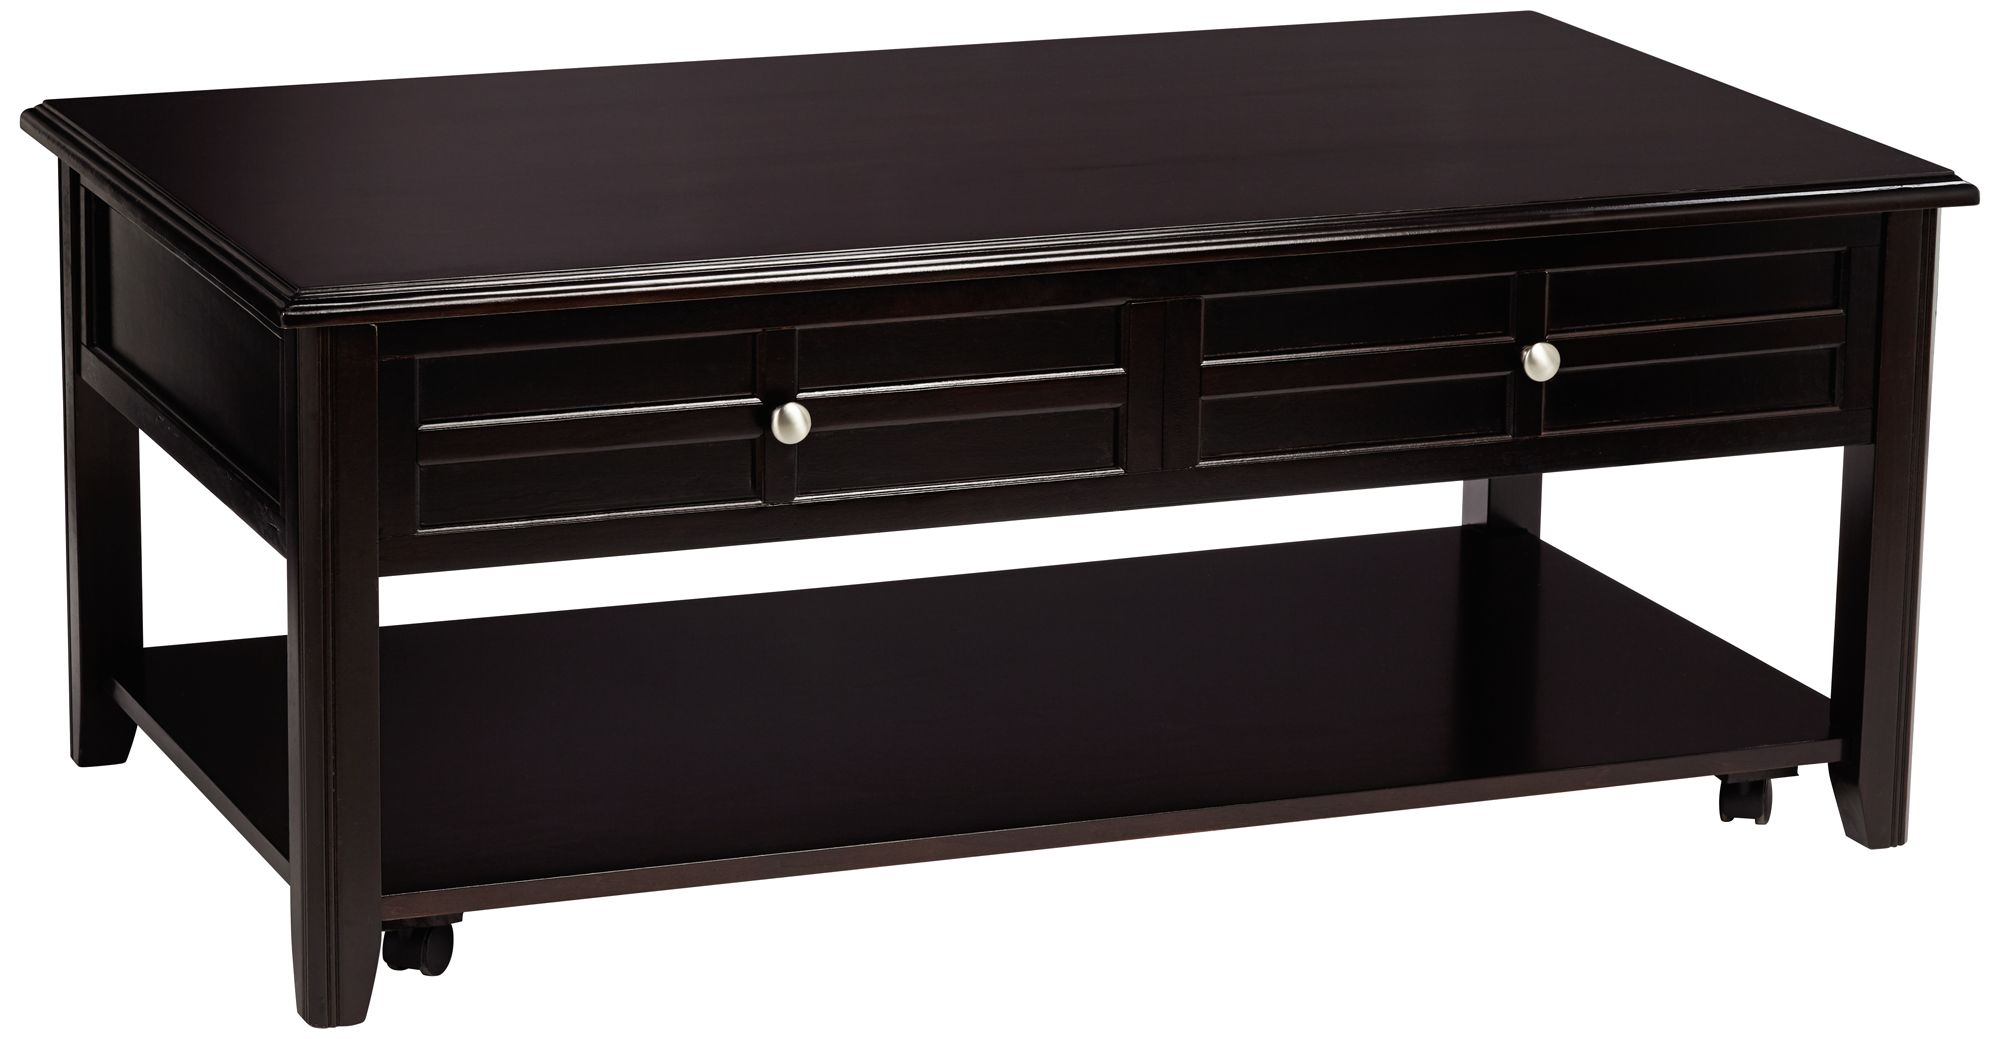 Carrier Dark Espresso Lift Top 2 Drawer Coffee Table